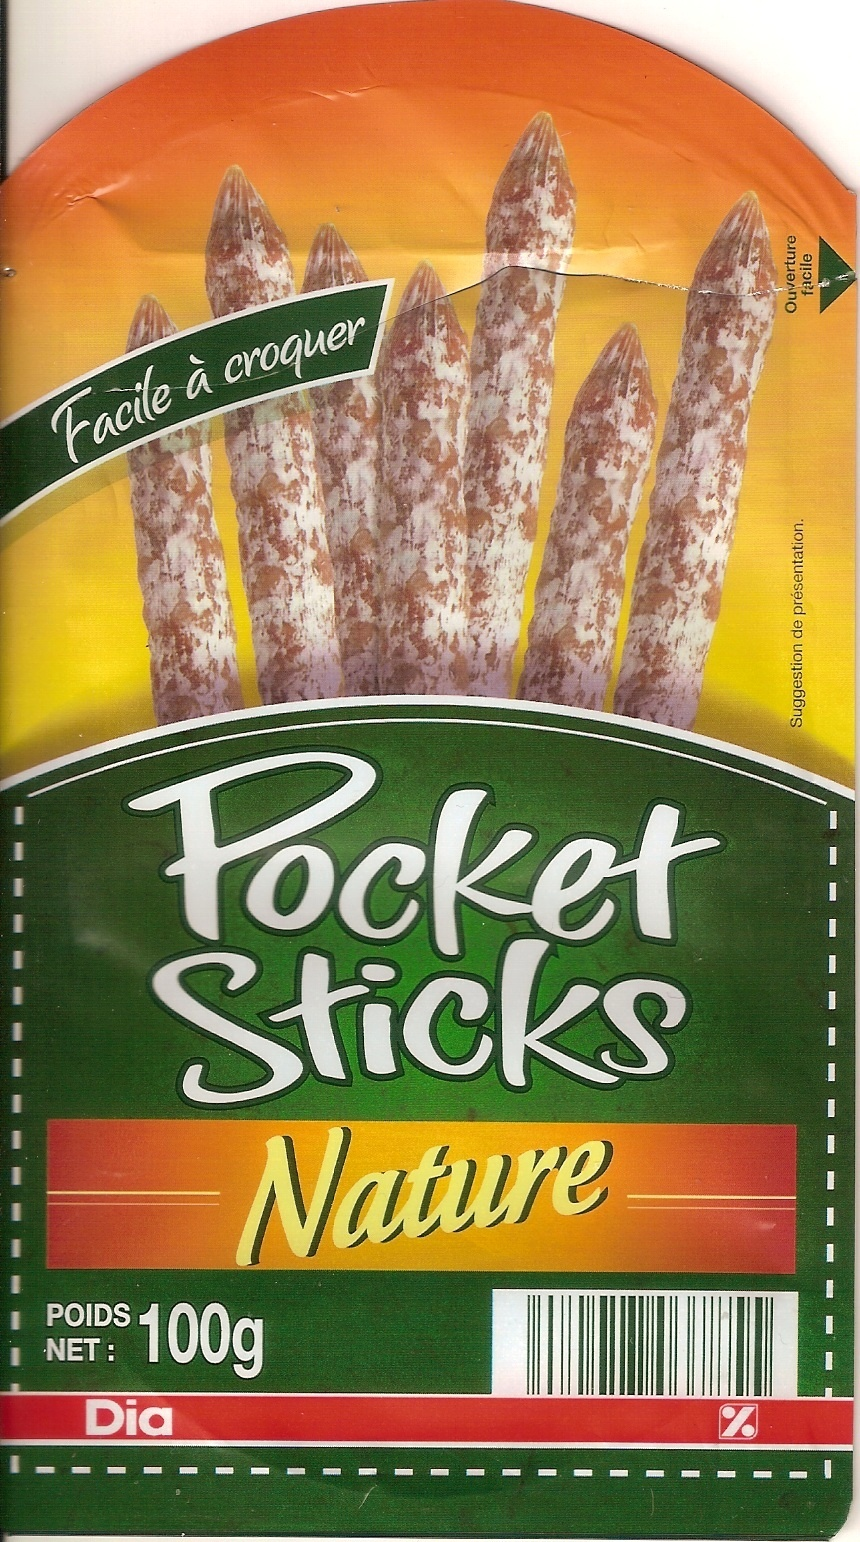 Pocket Sticks Nature - Product